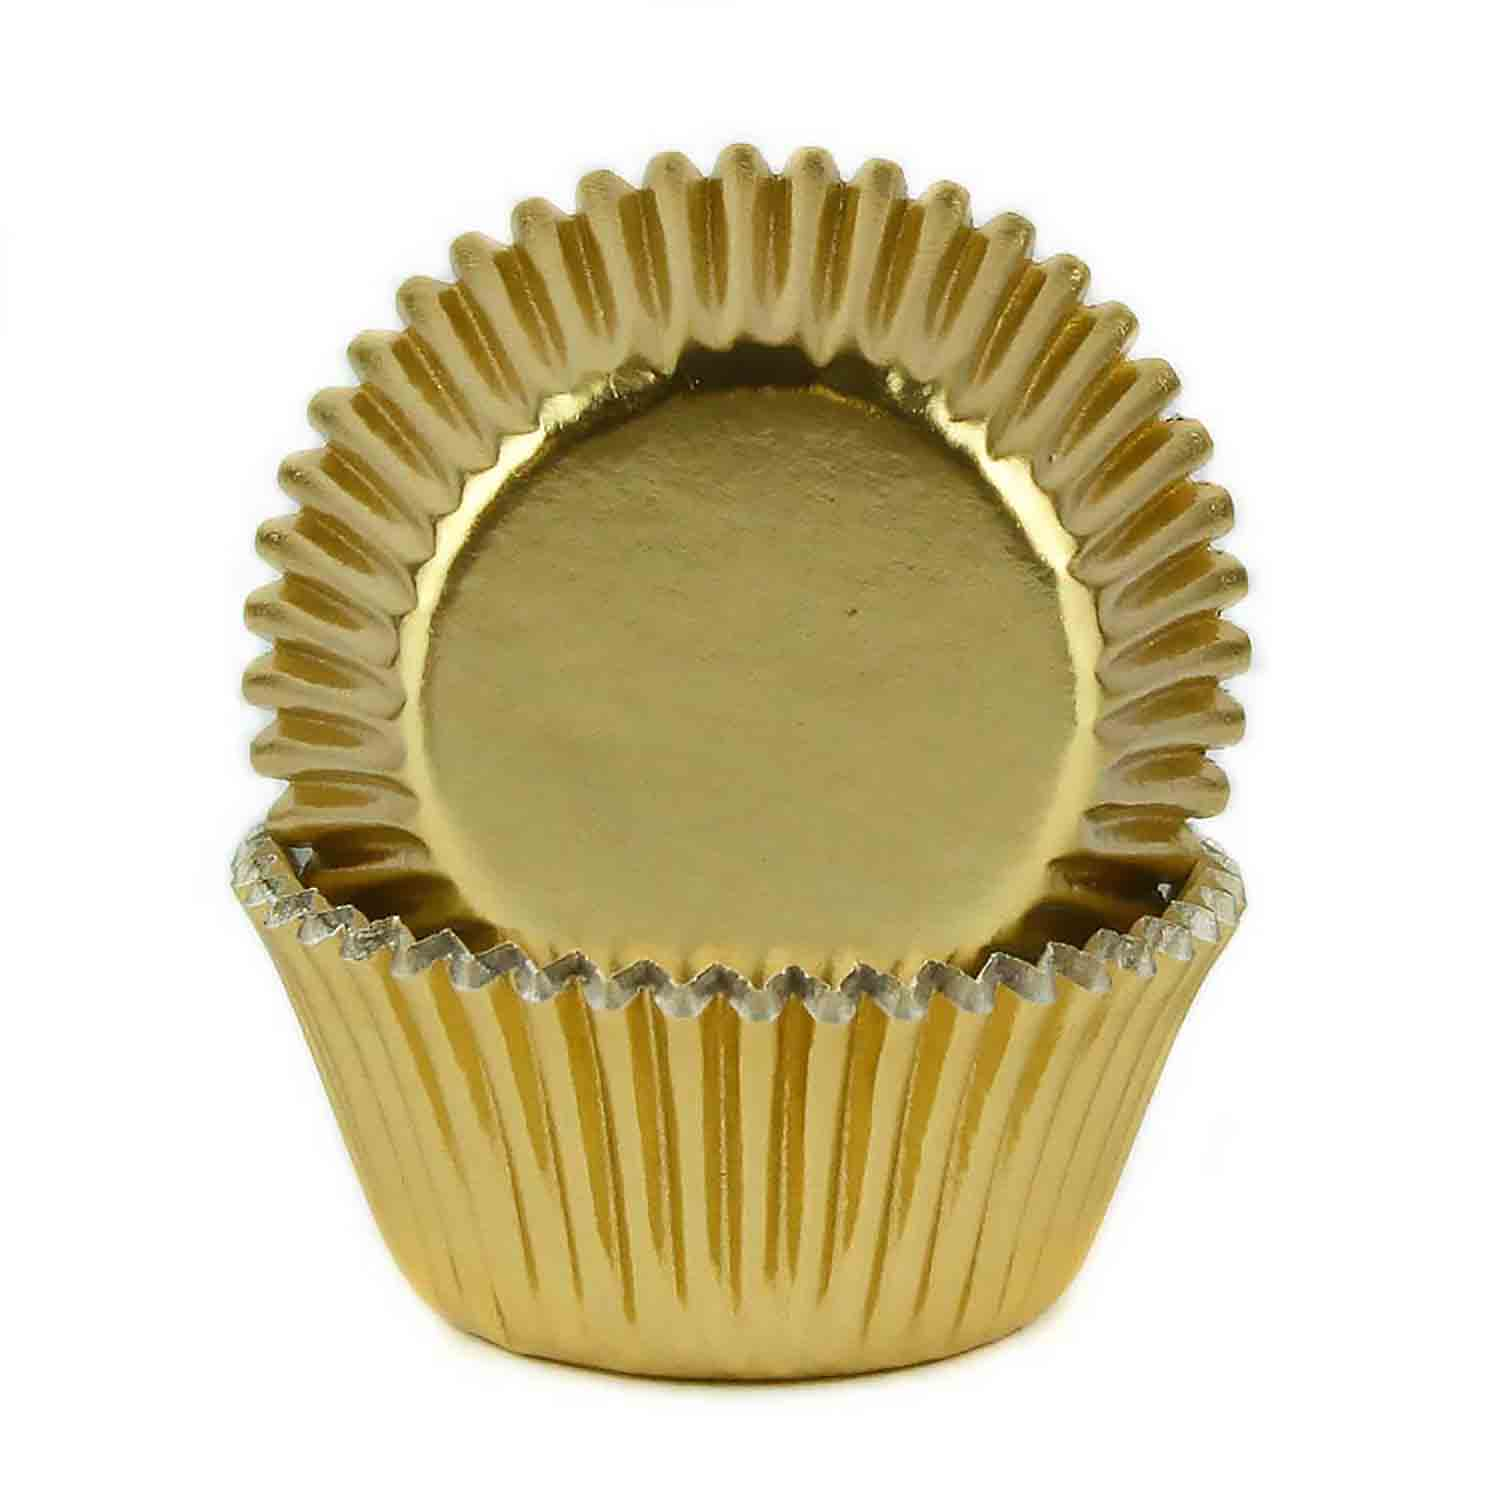 Gold Foil Mini Baking Cups / #6 Candy Cup